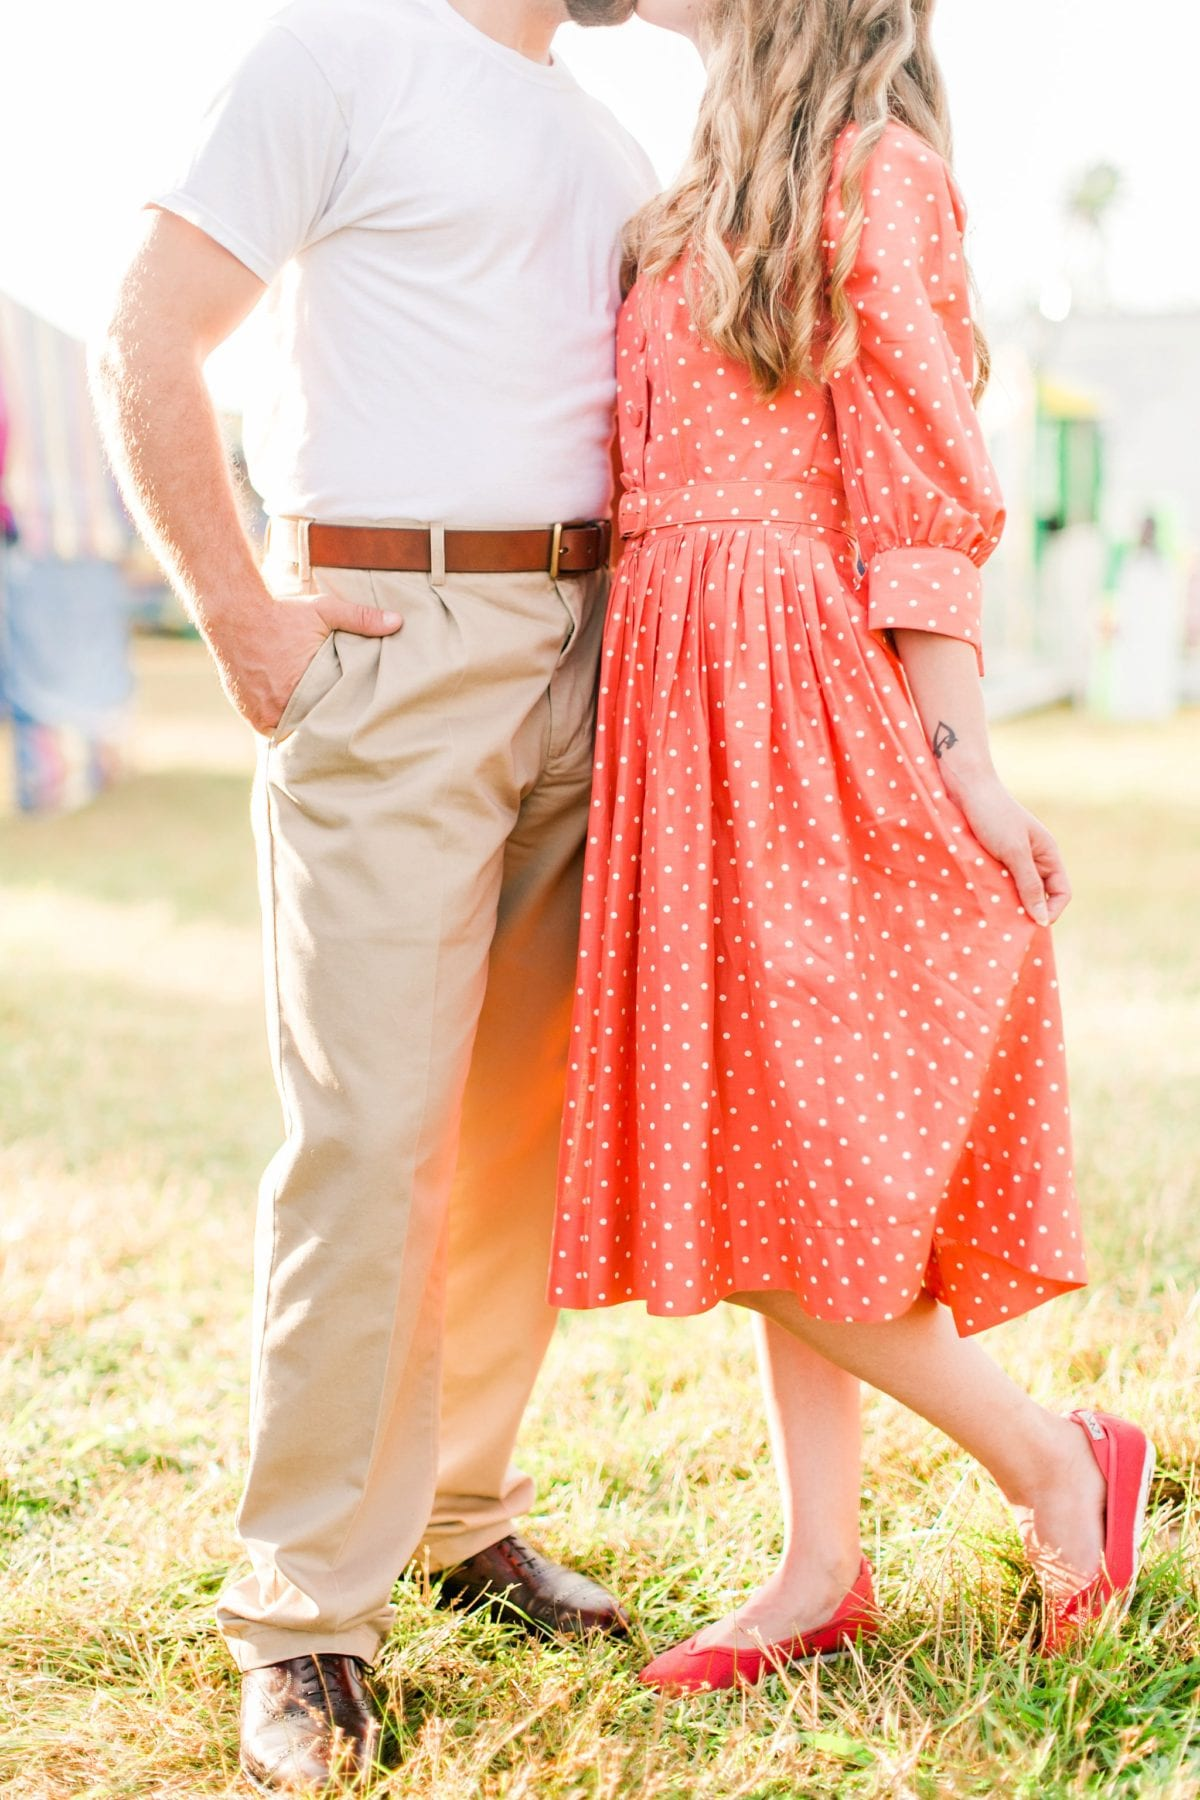 County Fair Engagement Photos Virginia Wedding Photographer Megan Kelsey Photography Samantha & Charles-178.JPG